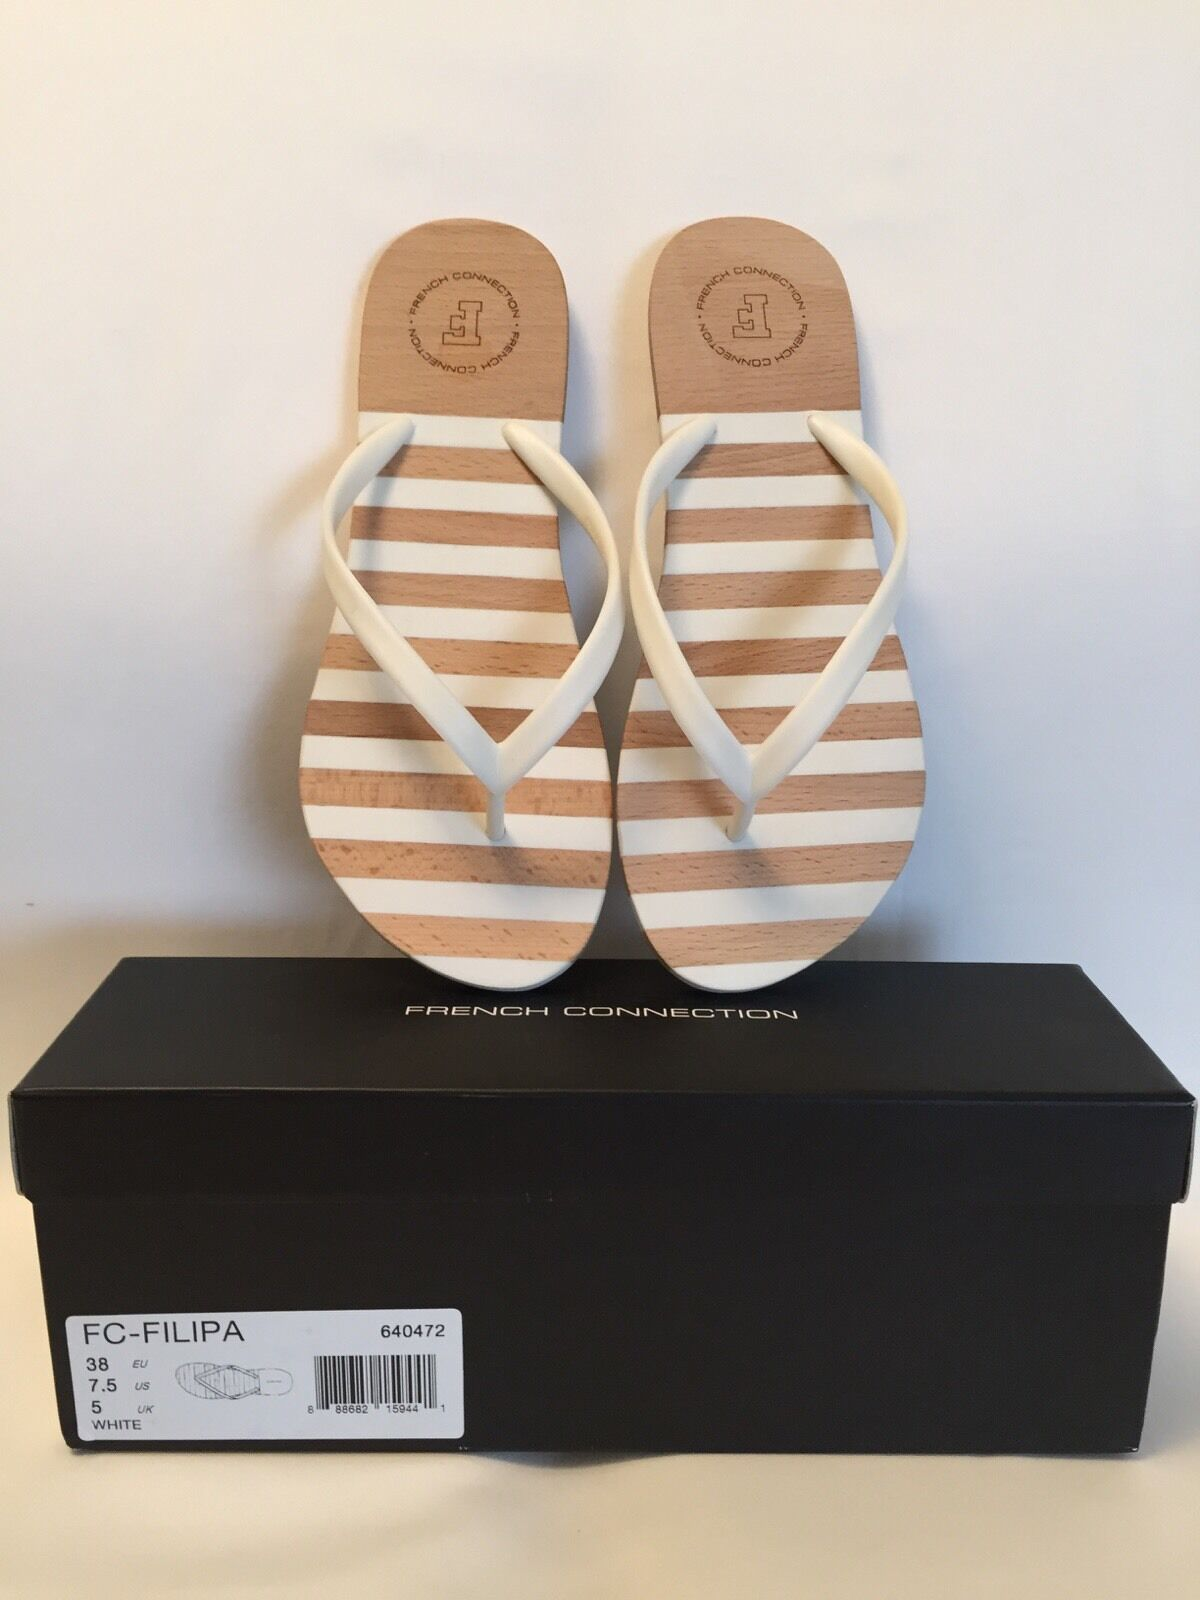 FRENCH CONNECTION Filipa Striped Sandals Size -8